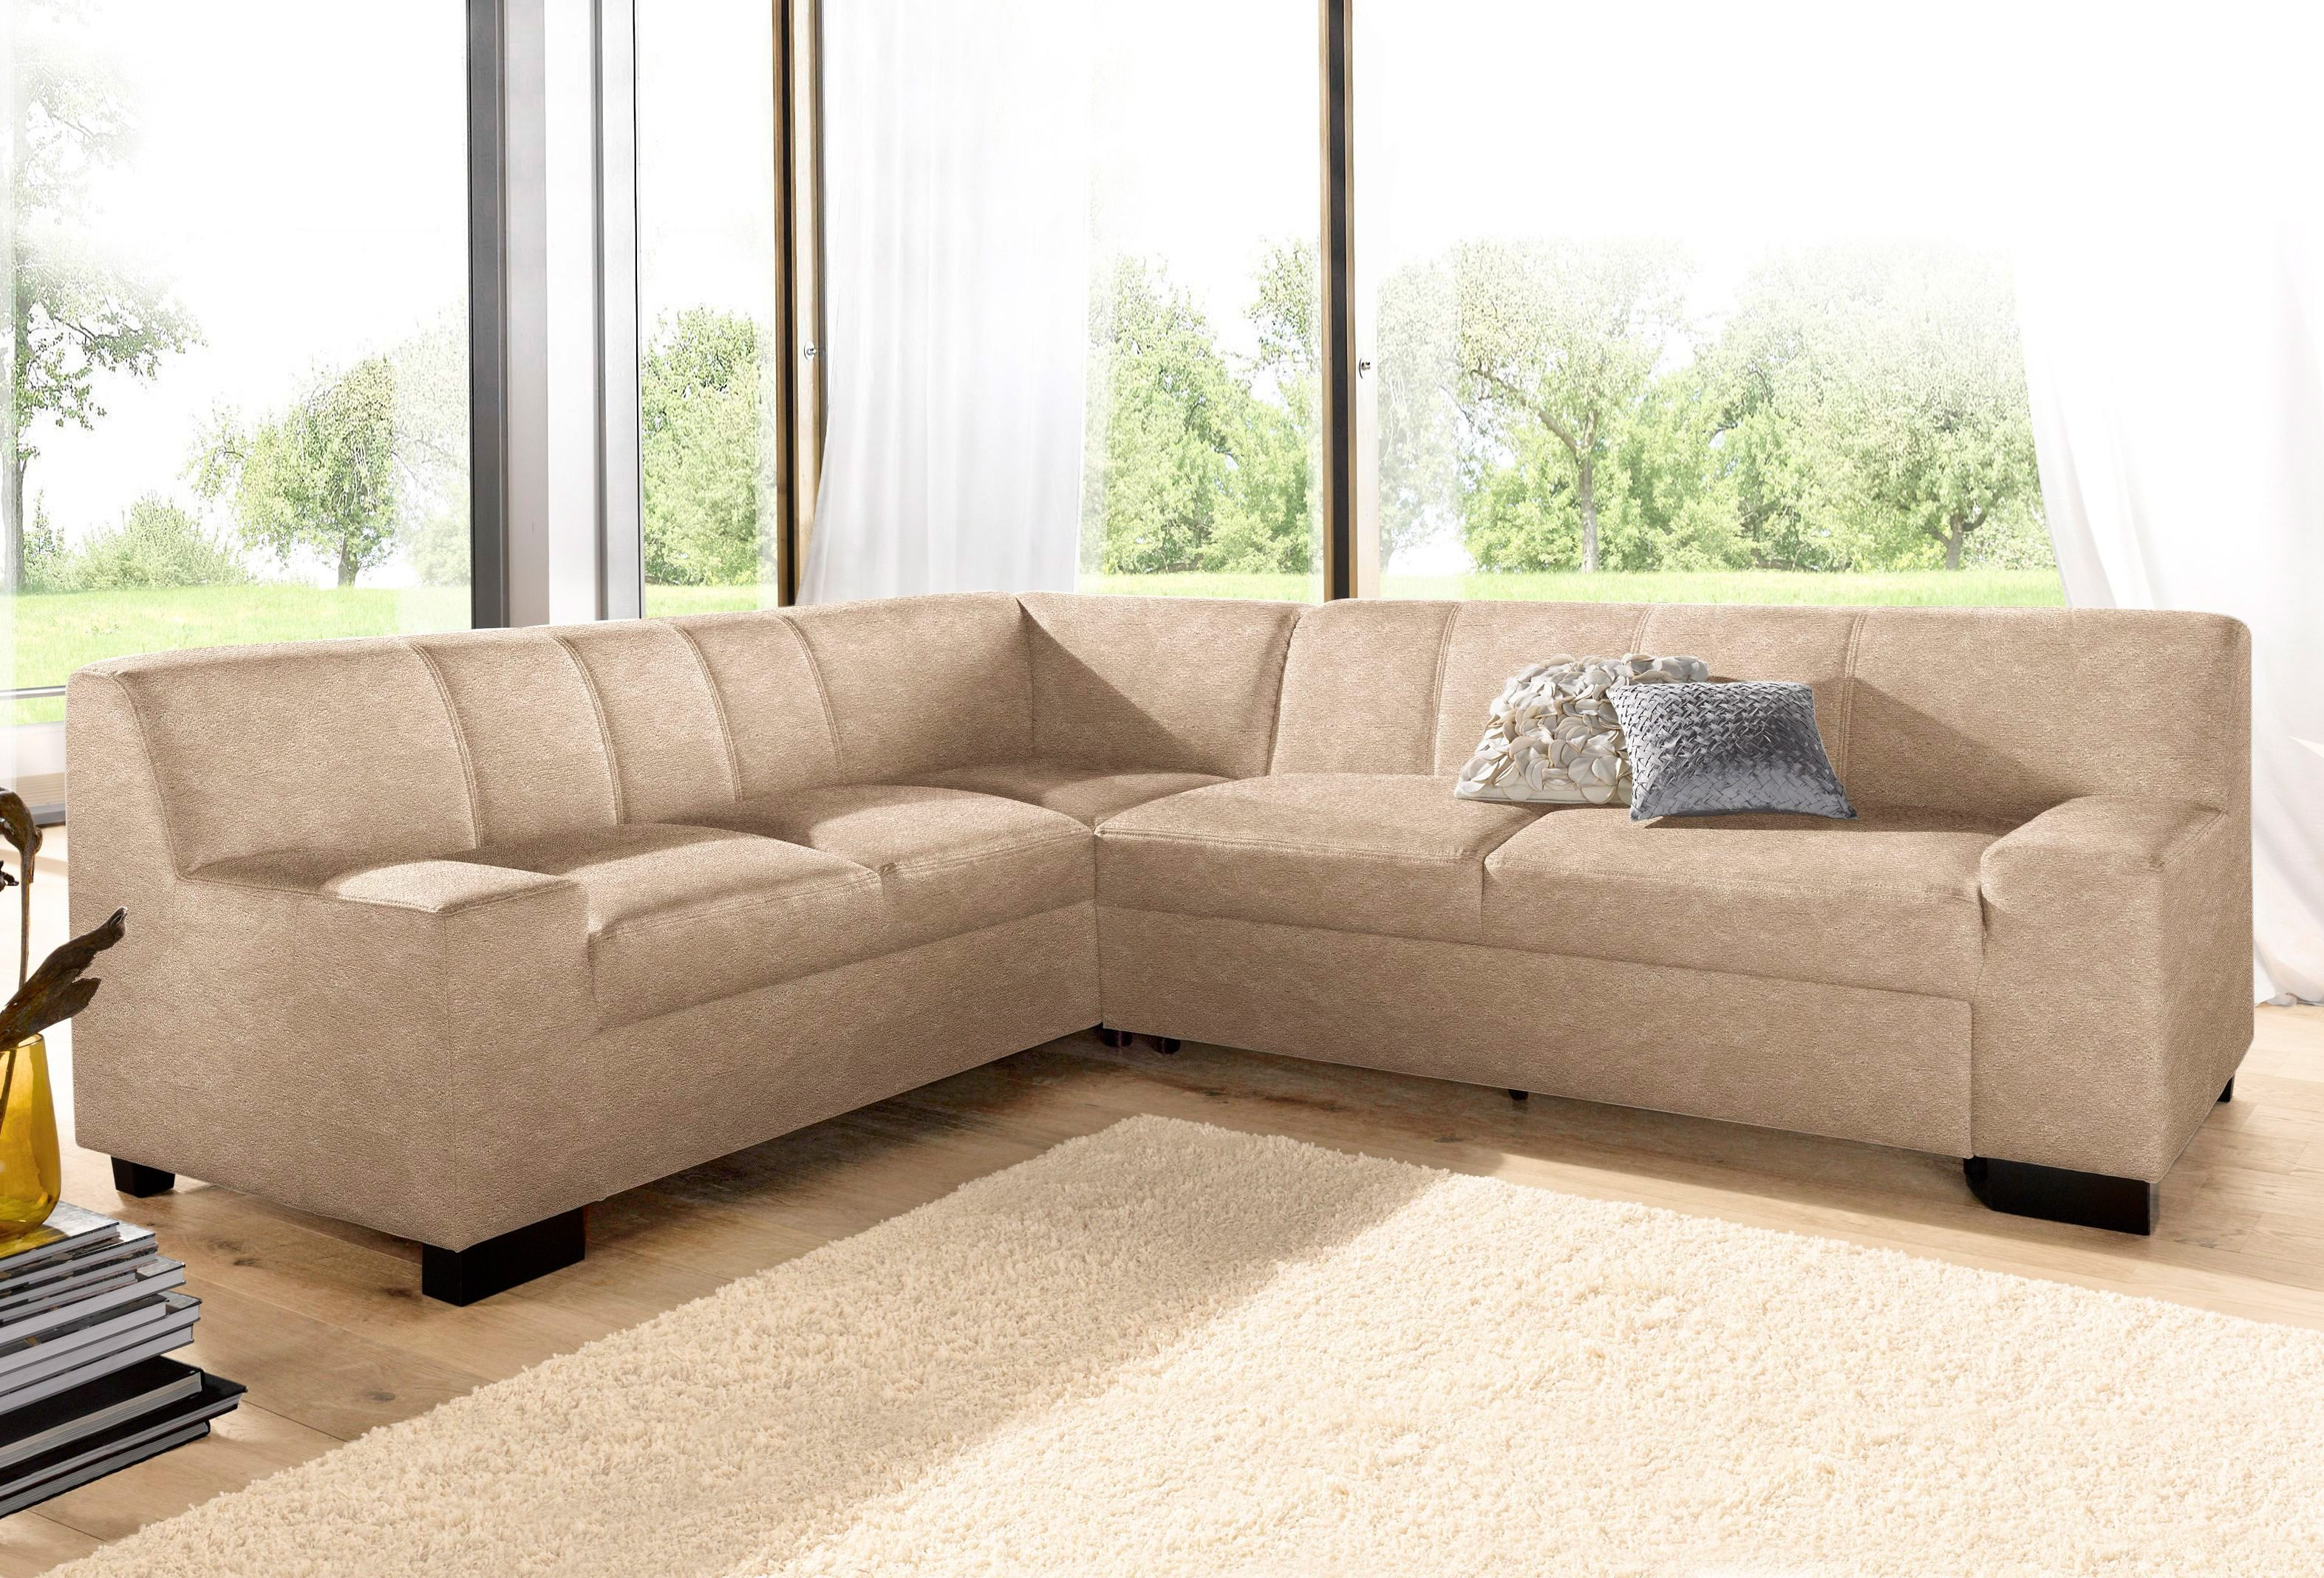 Kunstleder Ecksofa Domo Collection Ecksofa, Wahlweise Mit Bettfunktion Online